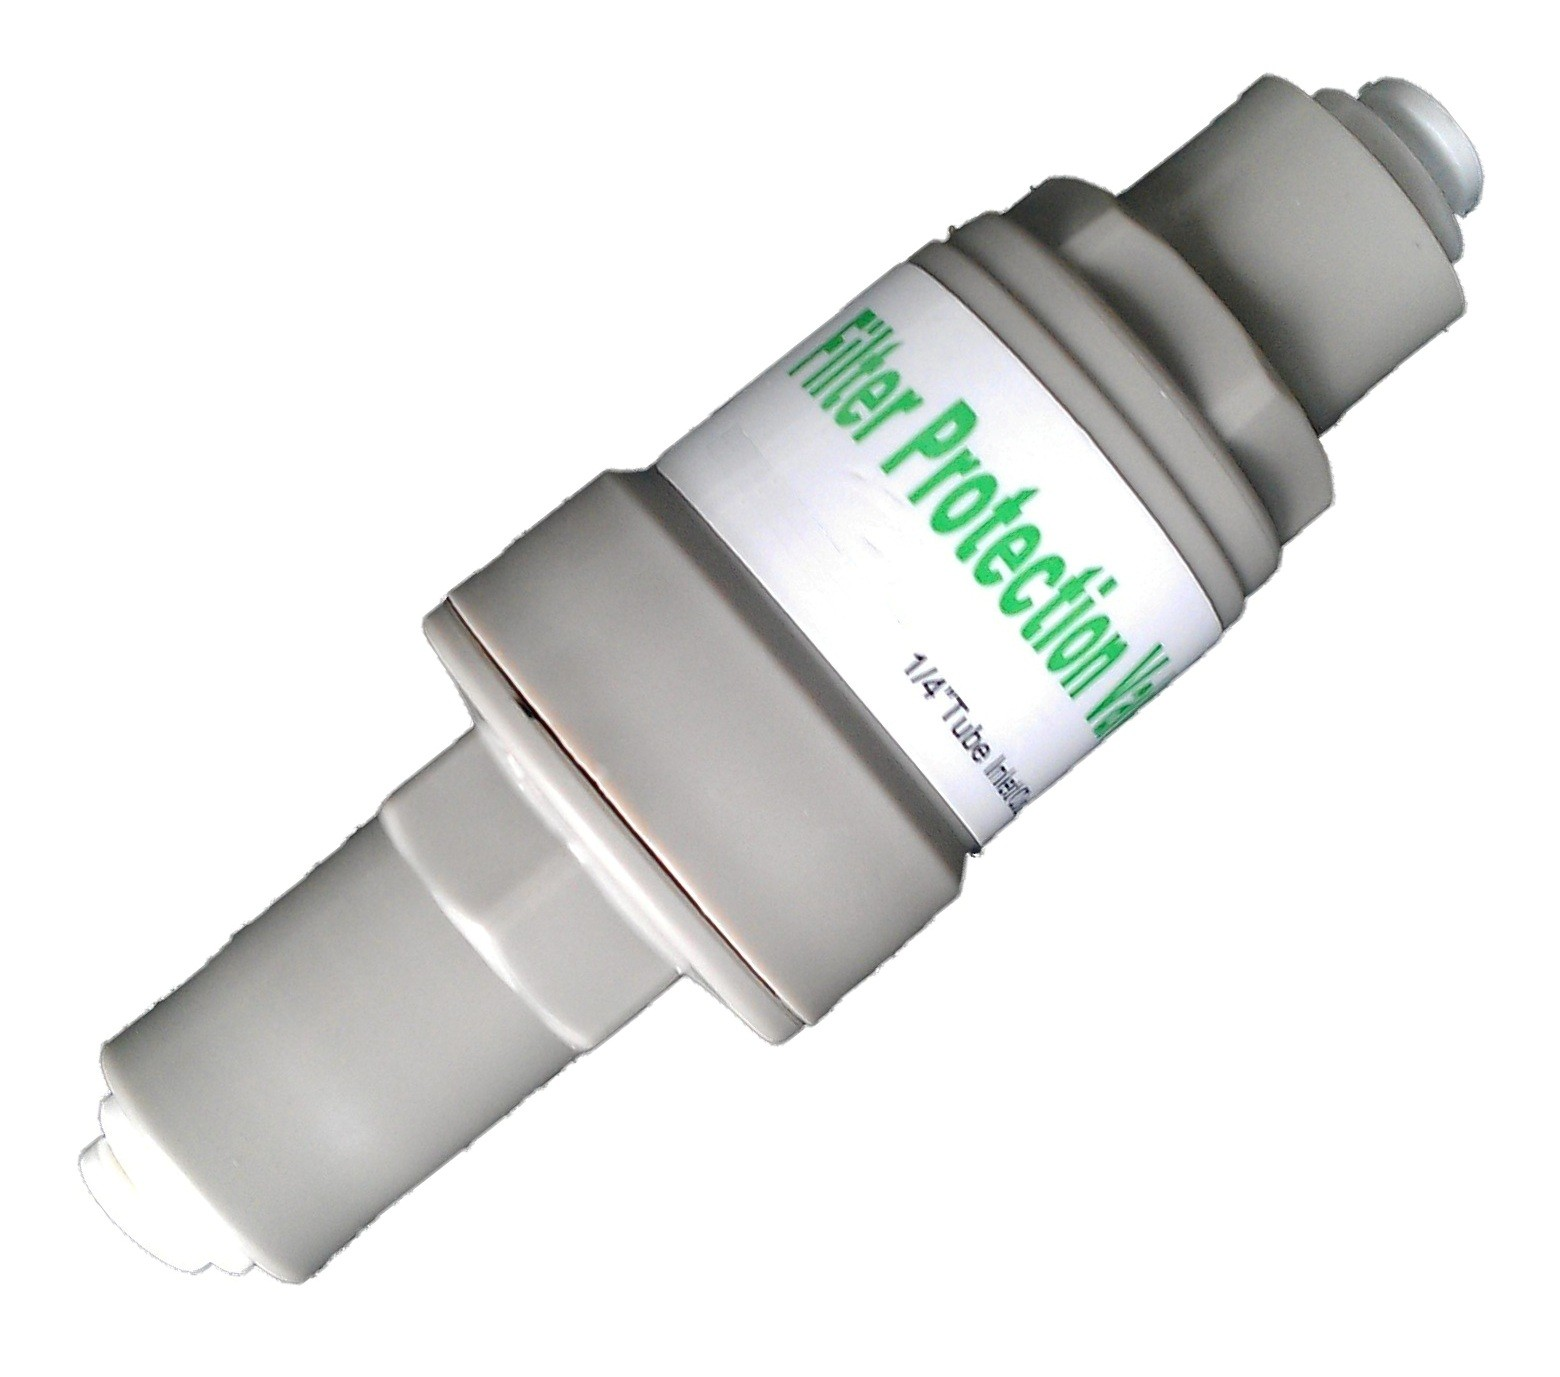 Filter Protection Pressure Reducing Valve For Fridges Water Filters Adapters